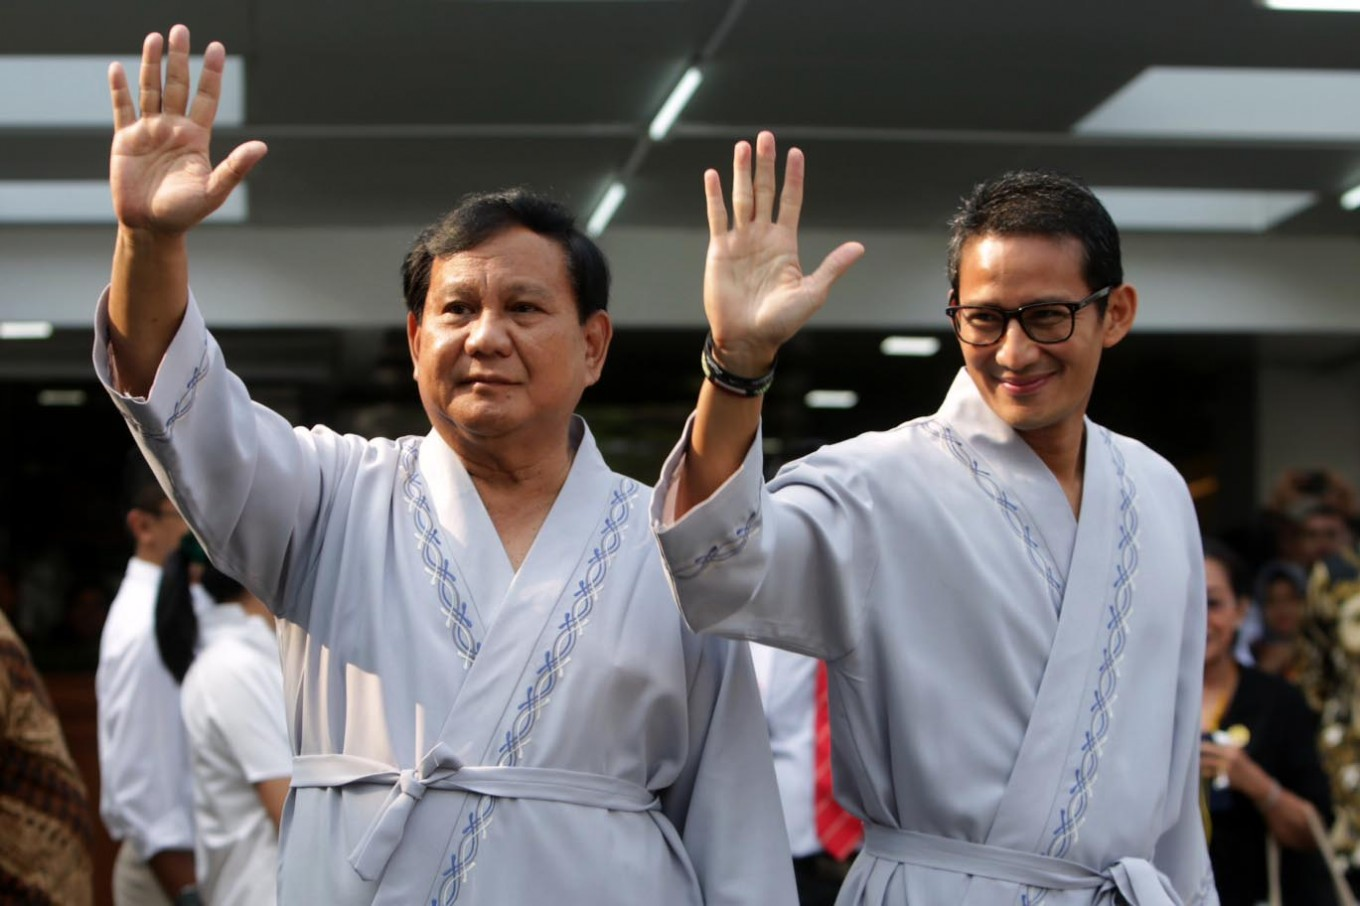 Prabowo-Sandiaga signs pact with GNPF, promises to uphold religious values